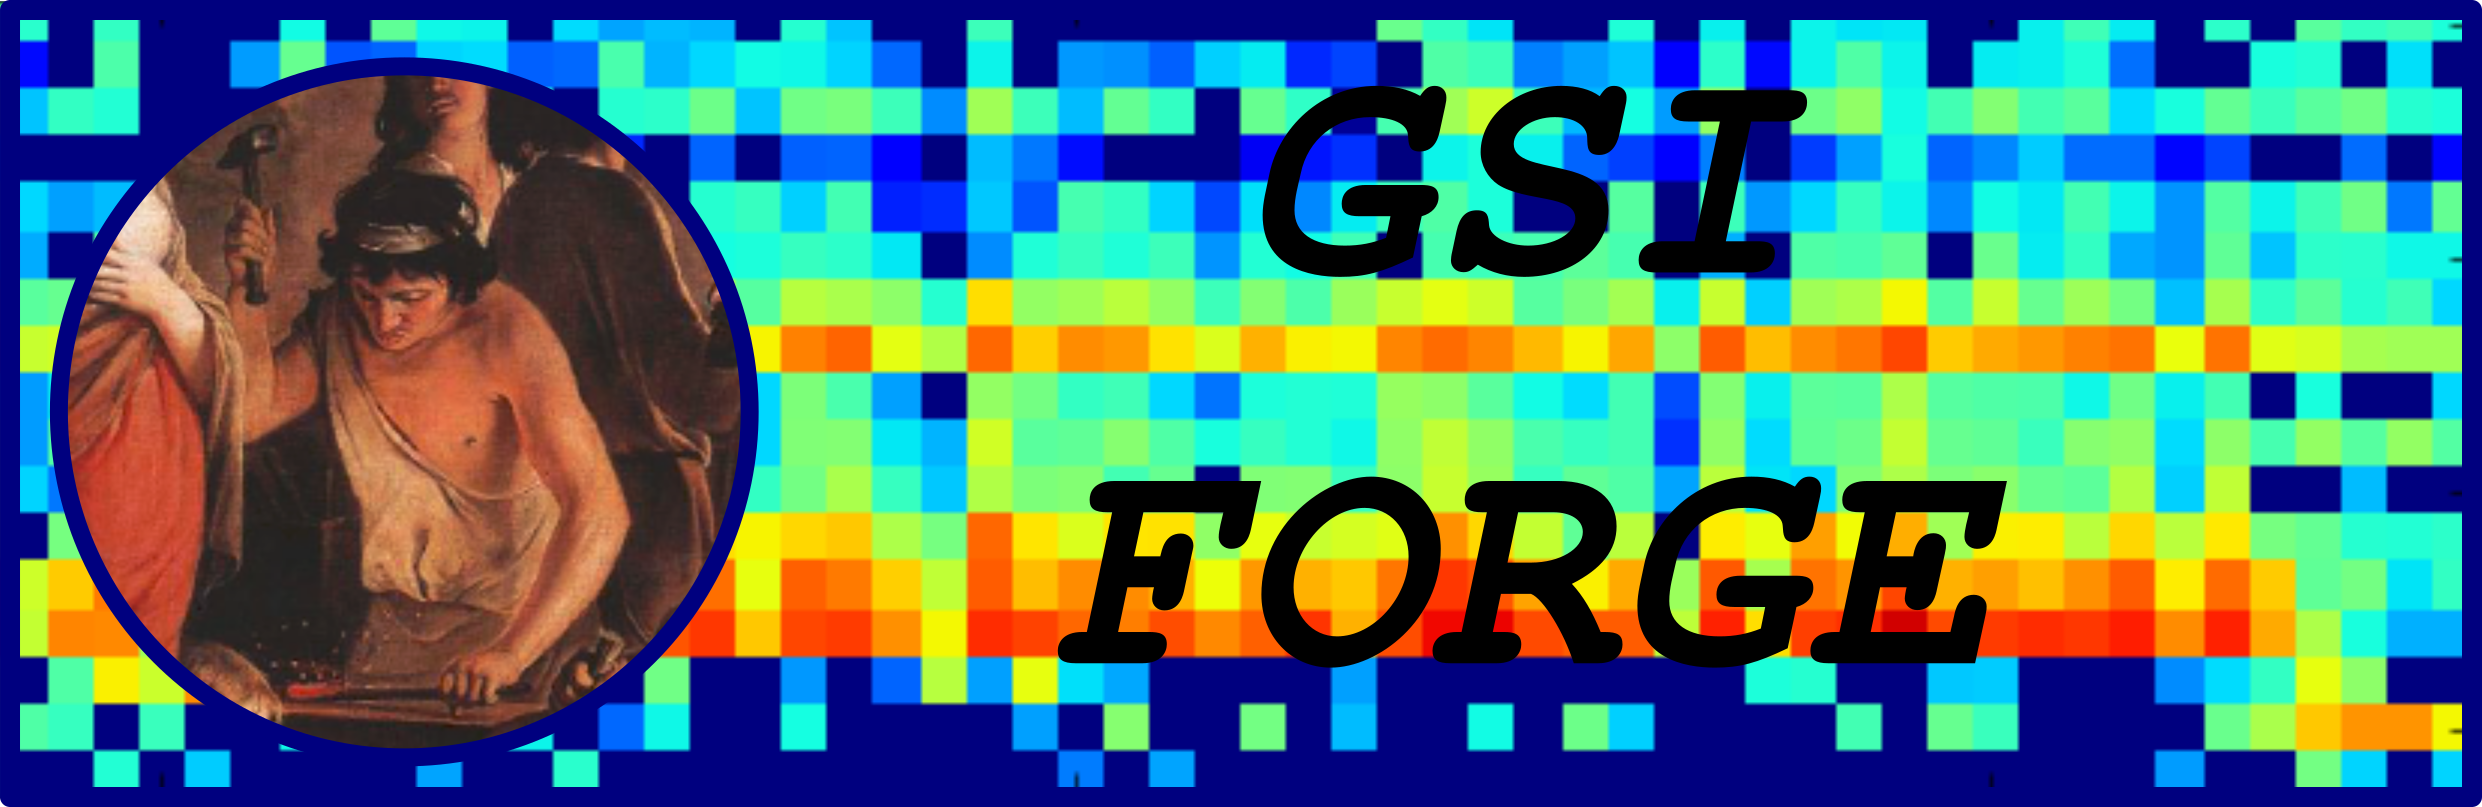 GSI_FORGE_Banner.png